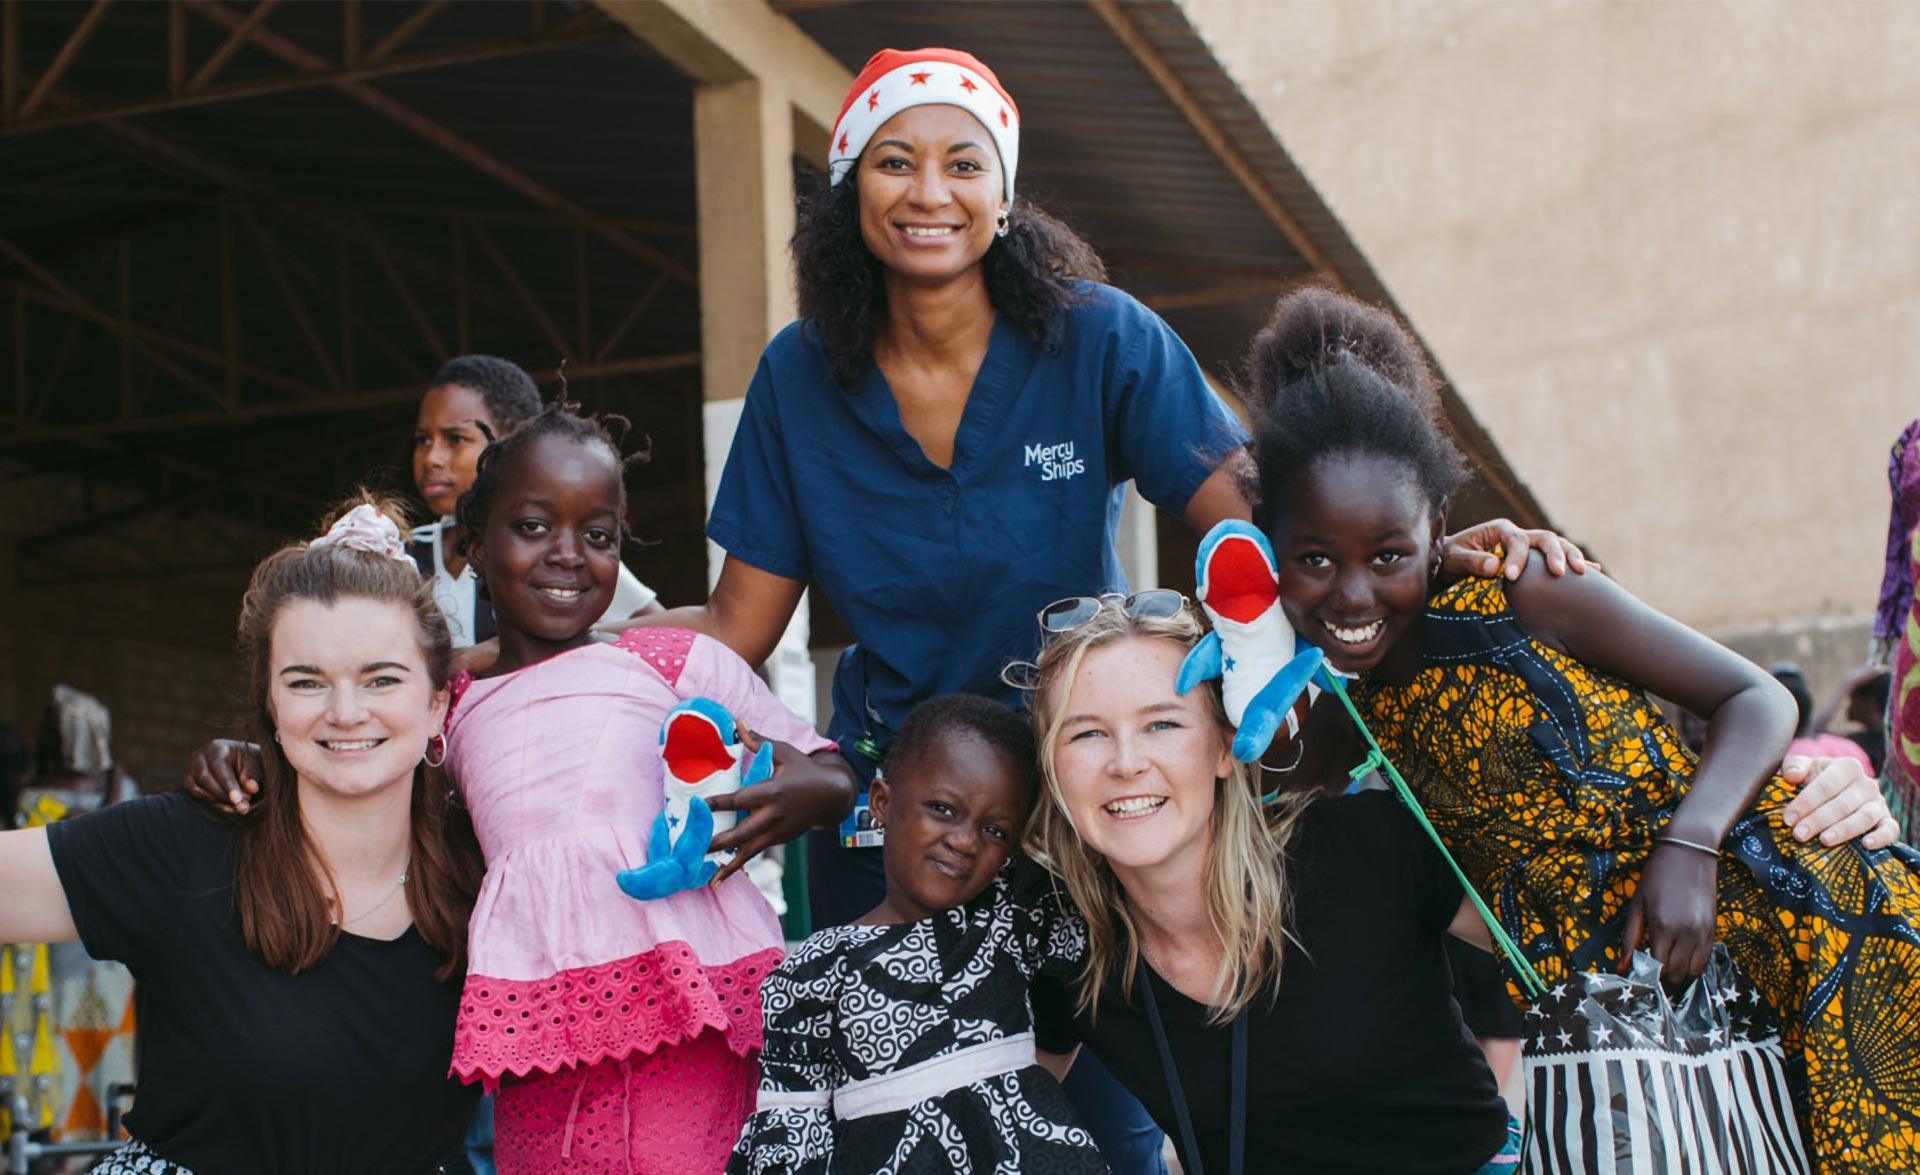 Daniela Neves switched to volunteer work for the Mercy Ships Foundation in Dakar